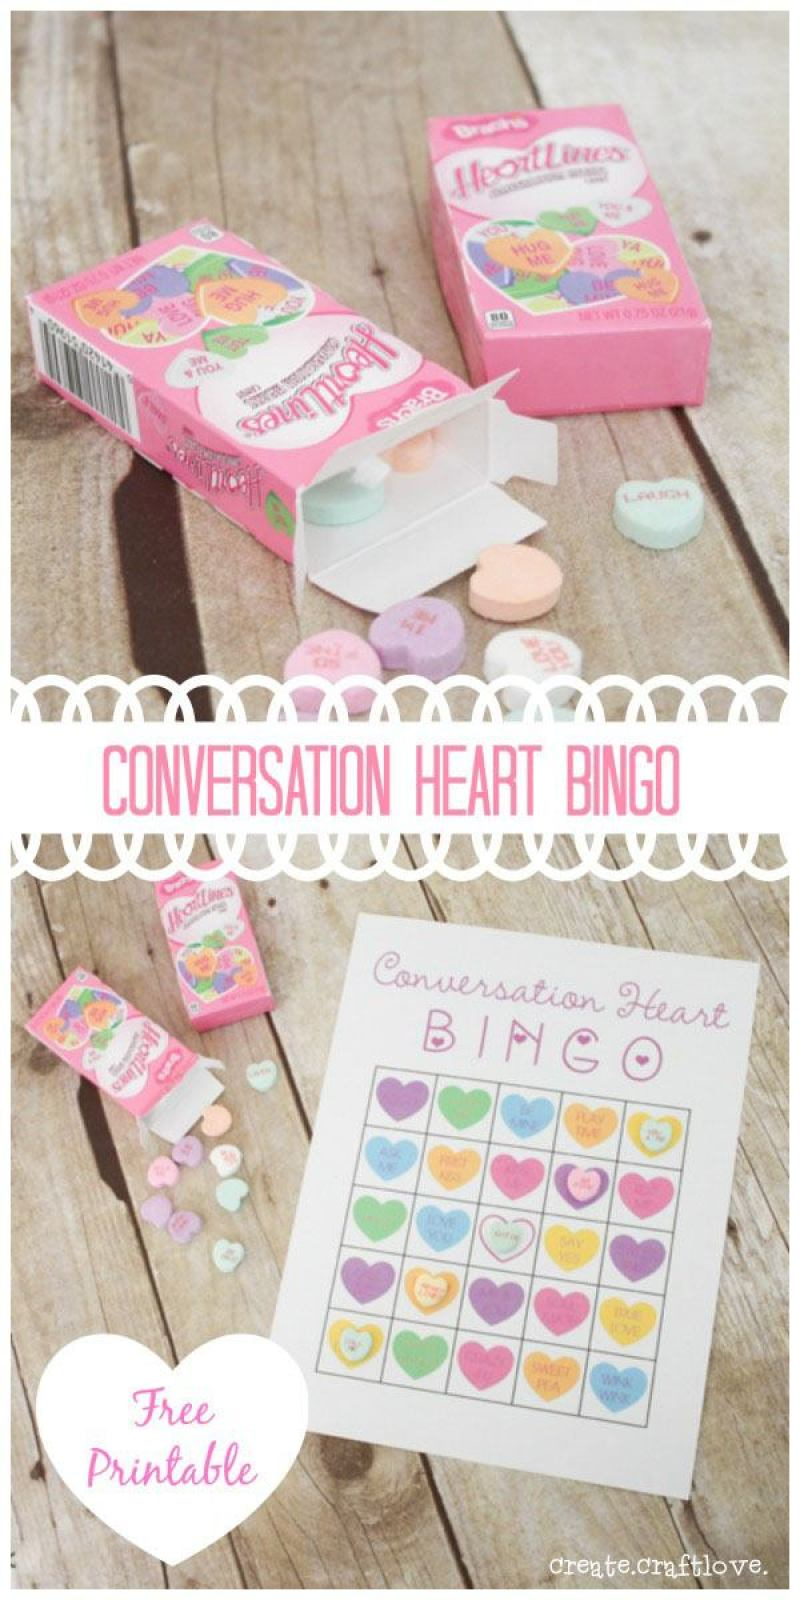 CONVERSATION HEART BINGO|FREE PRINTABLE